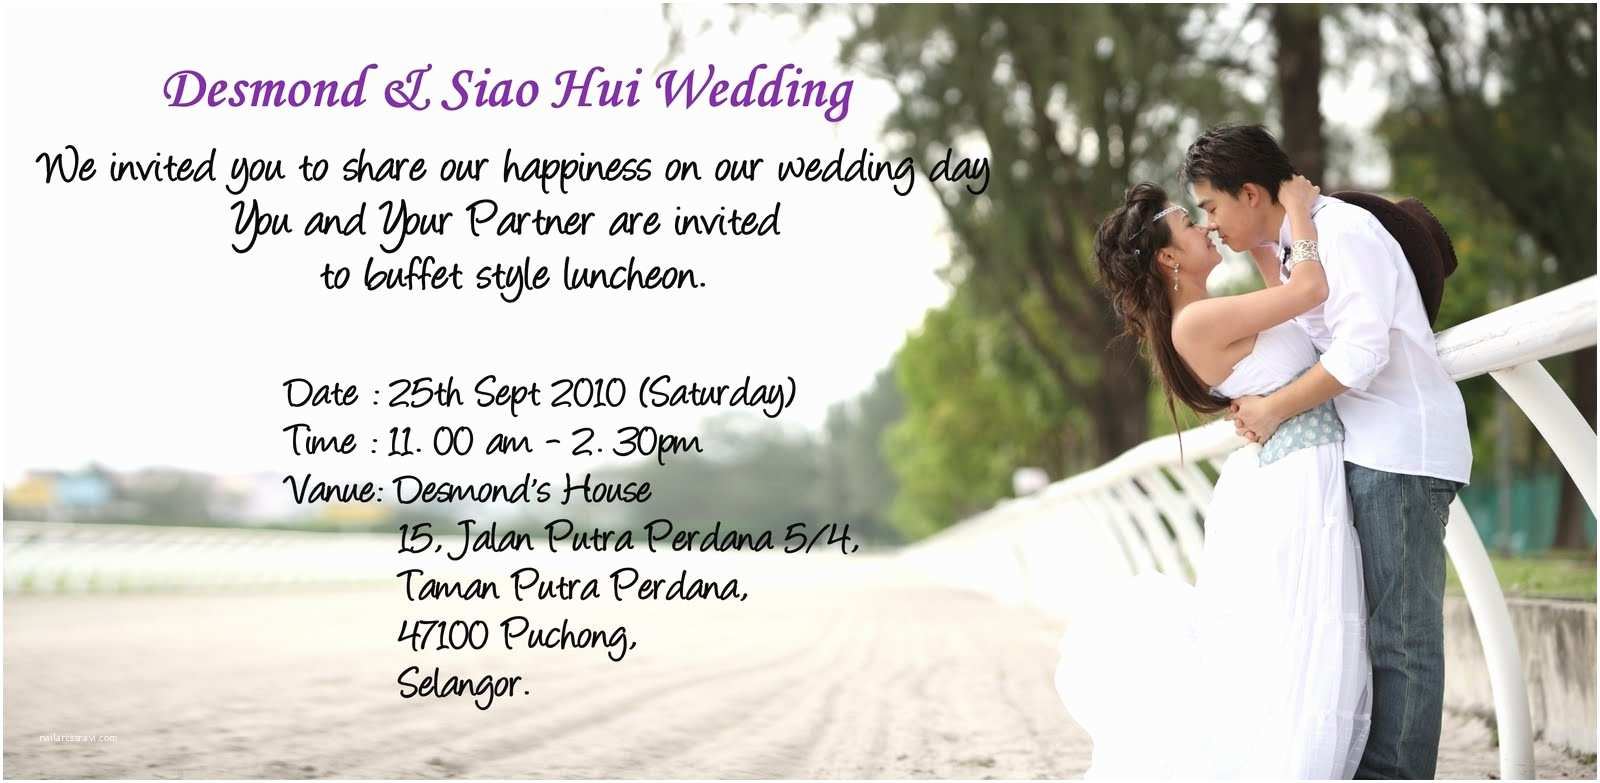 How to Send Wedding Invitations by Email Free Electronic Invitations